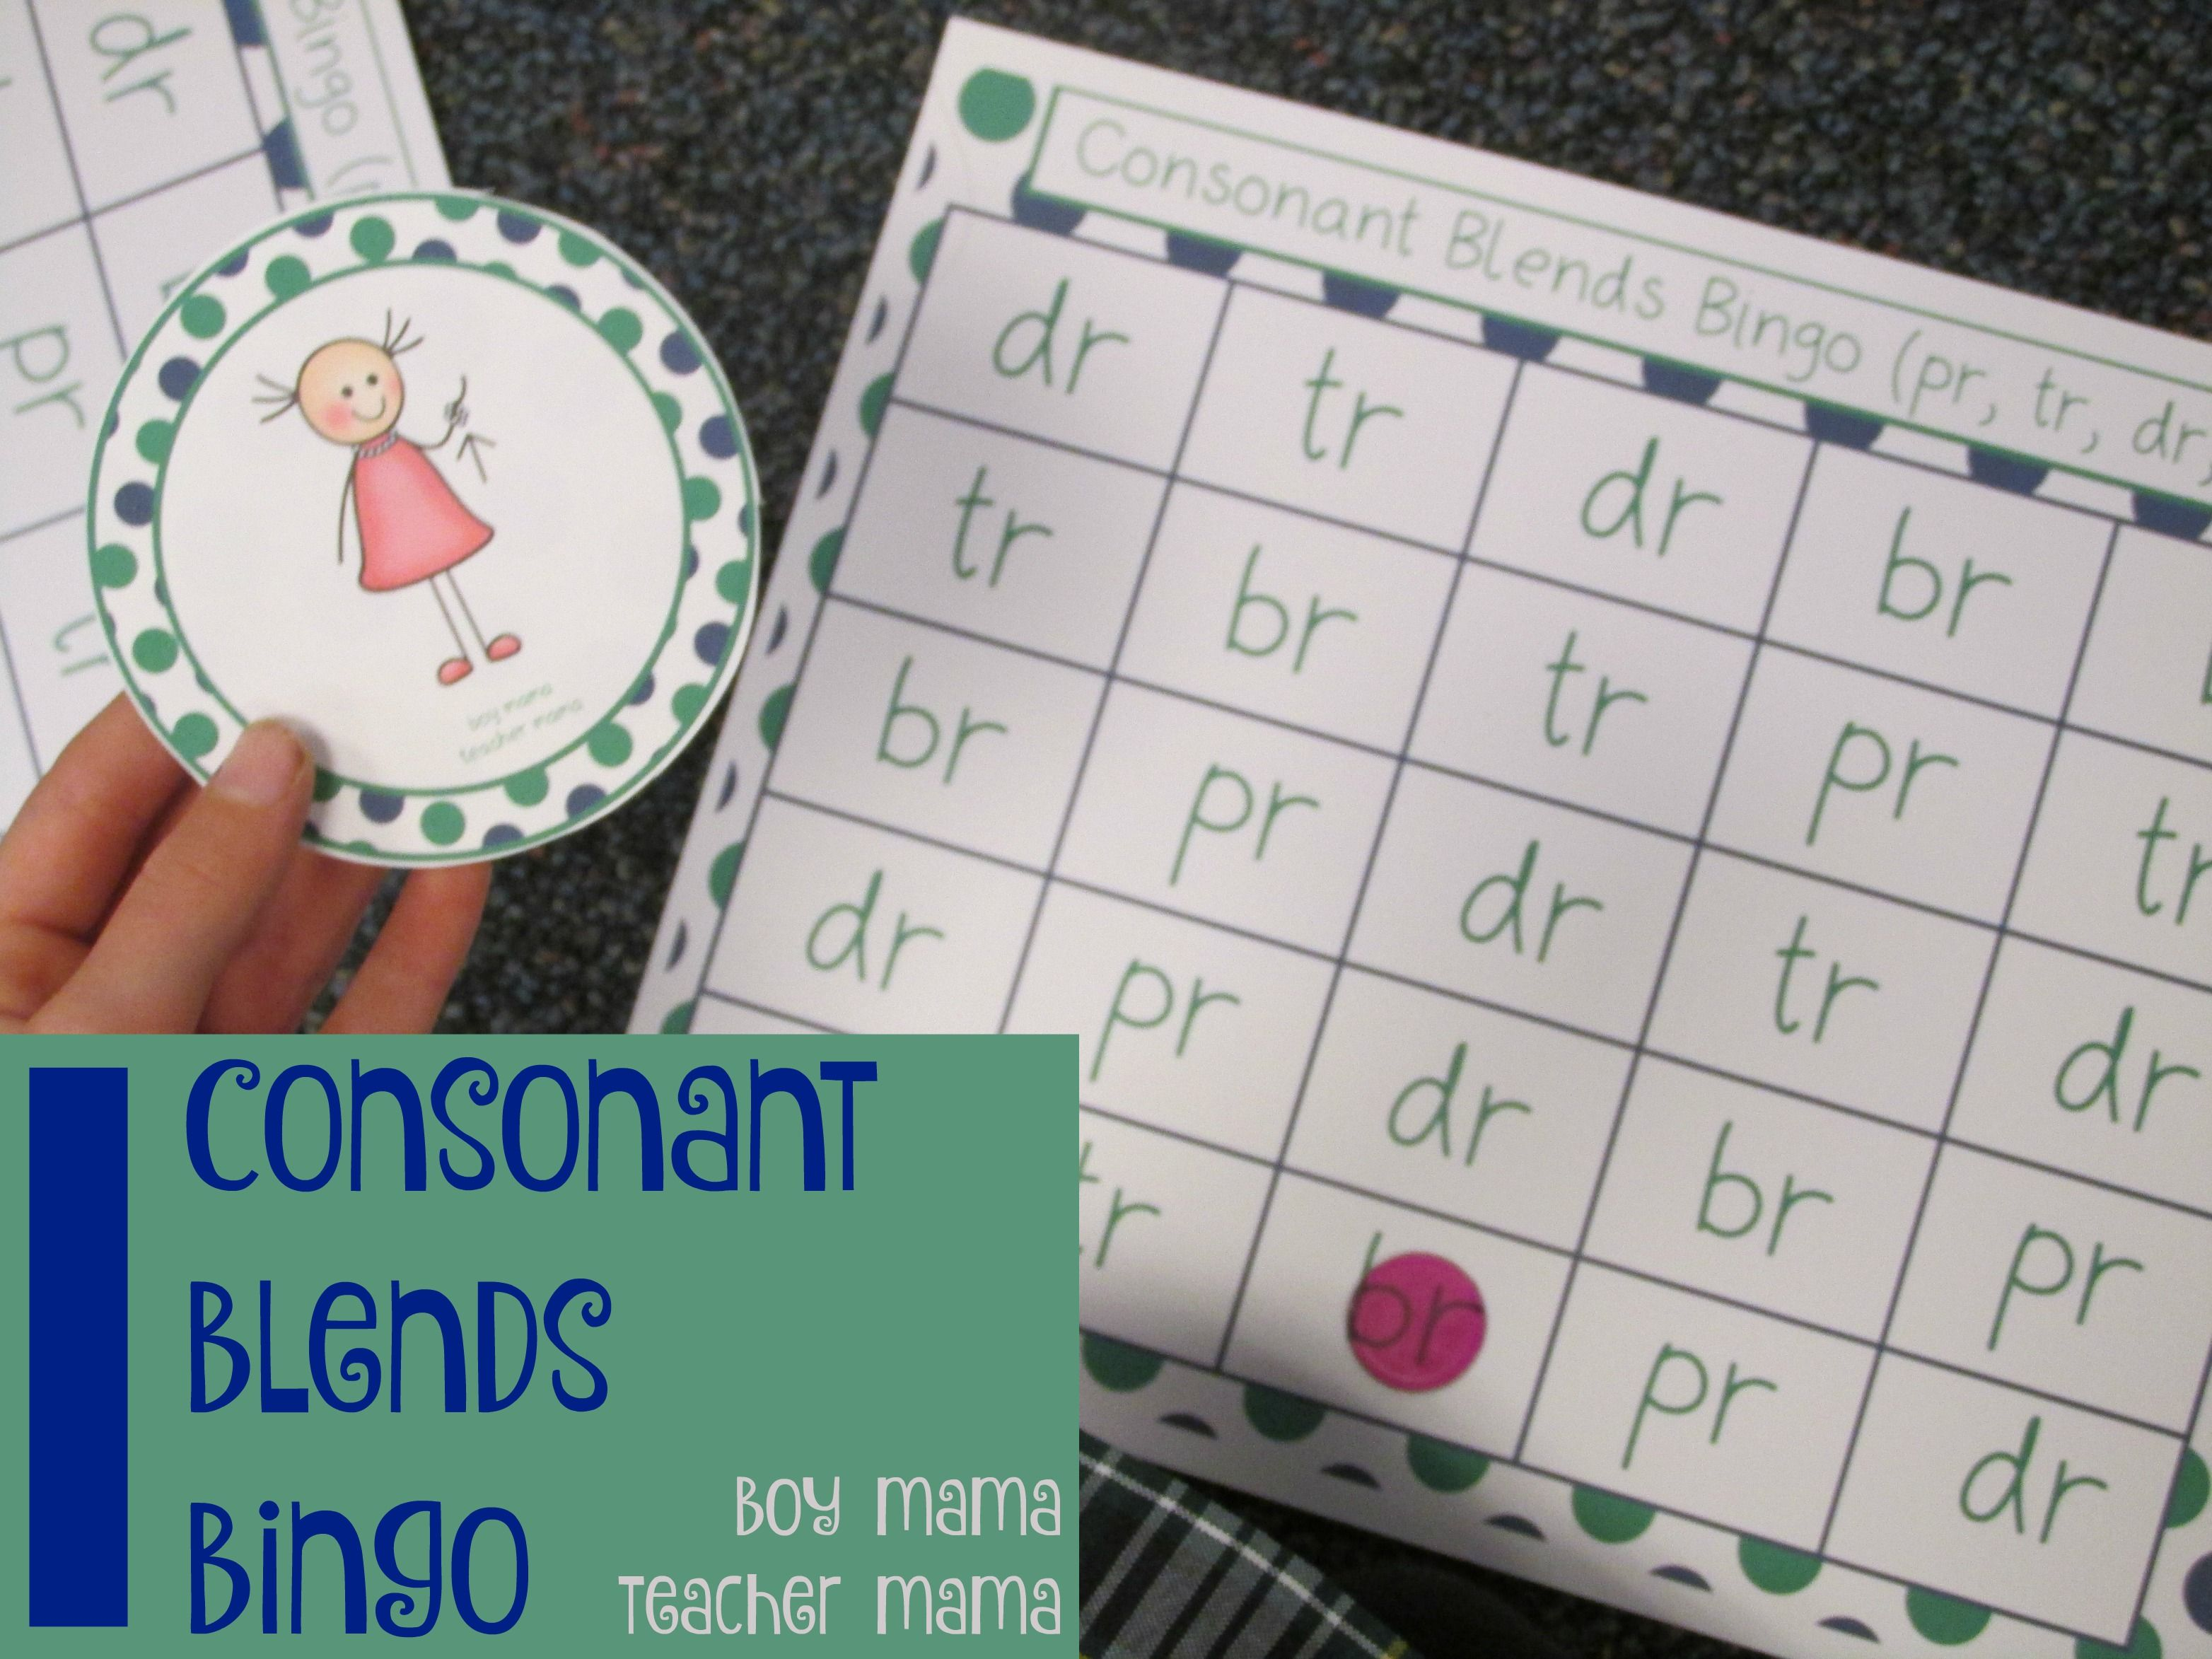 Teacher Mama Consonant Blends Bingo Pr Br Tr Dr After School Linky